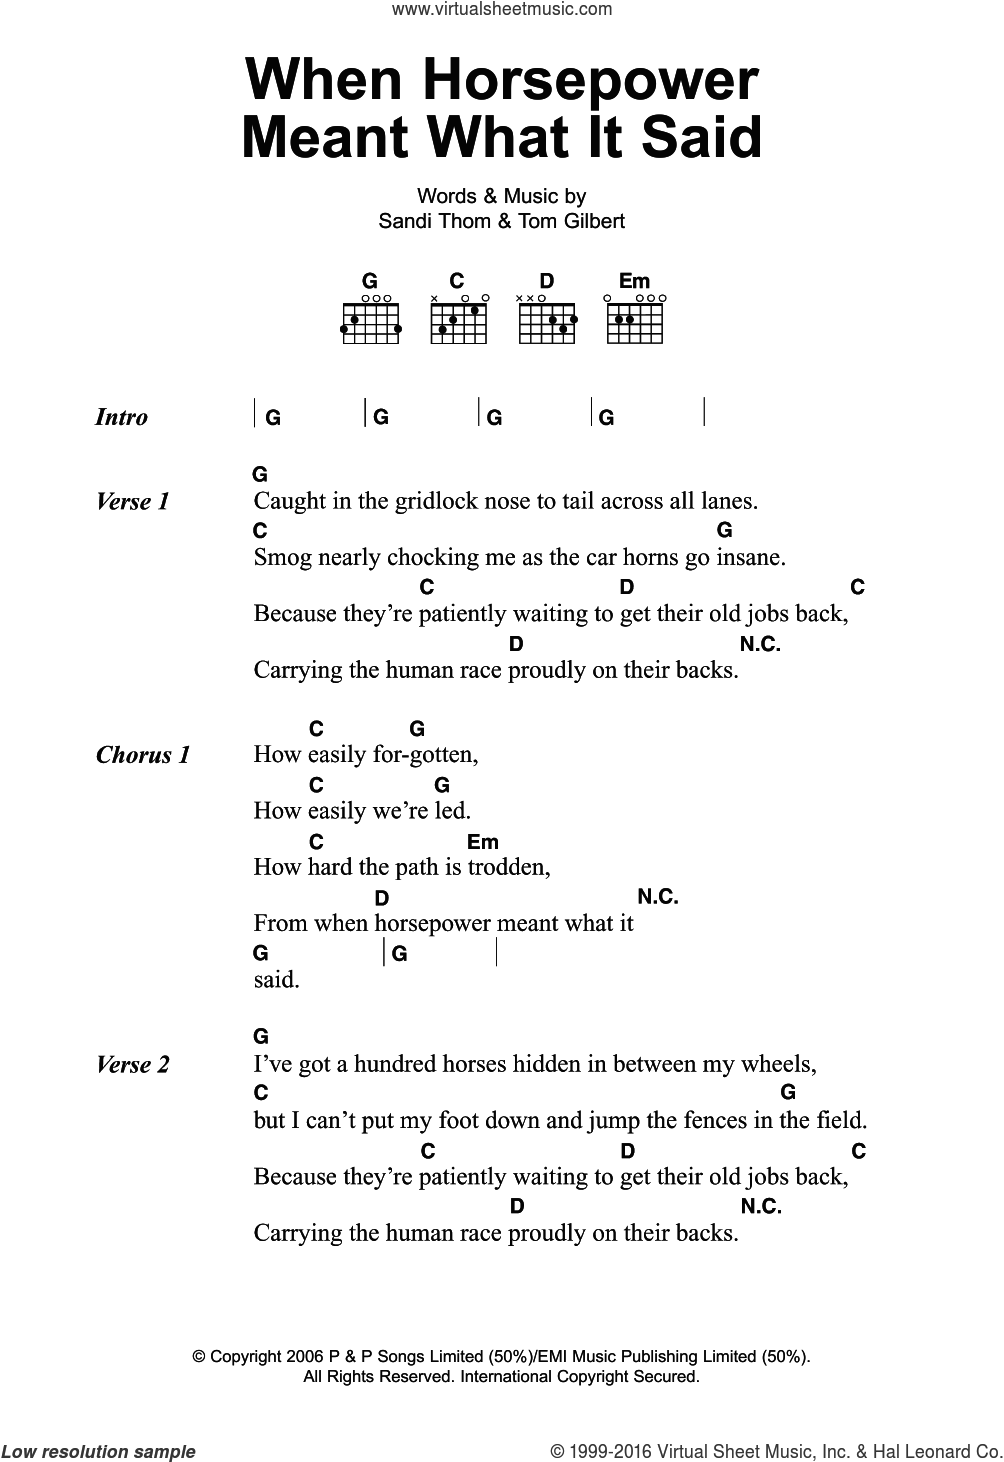 When Horsepower Meant What It Said sheet music for guitar (chords) by Sandi Thom and Tom Gilbert, intermediate skill level